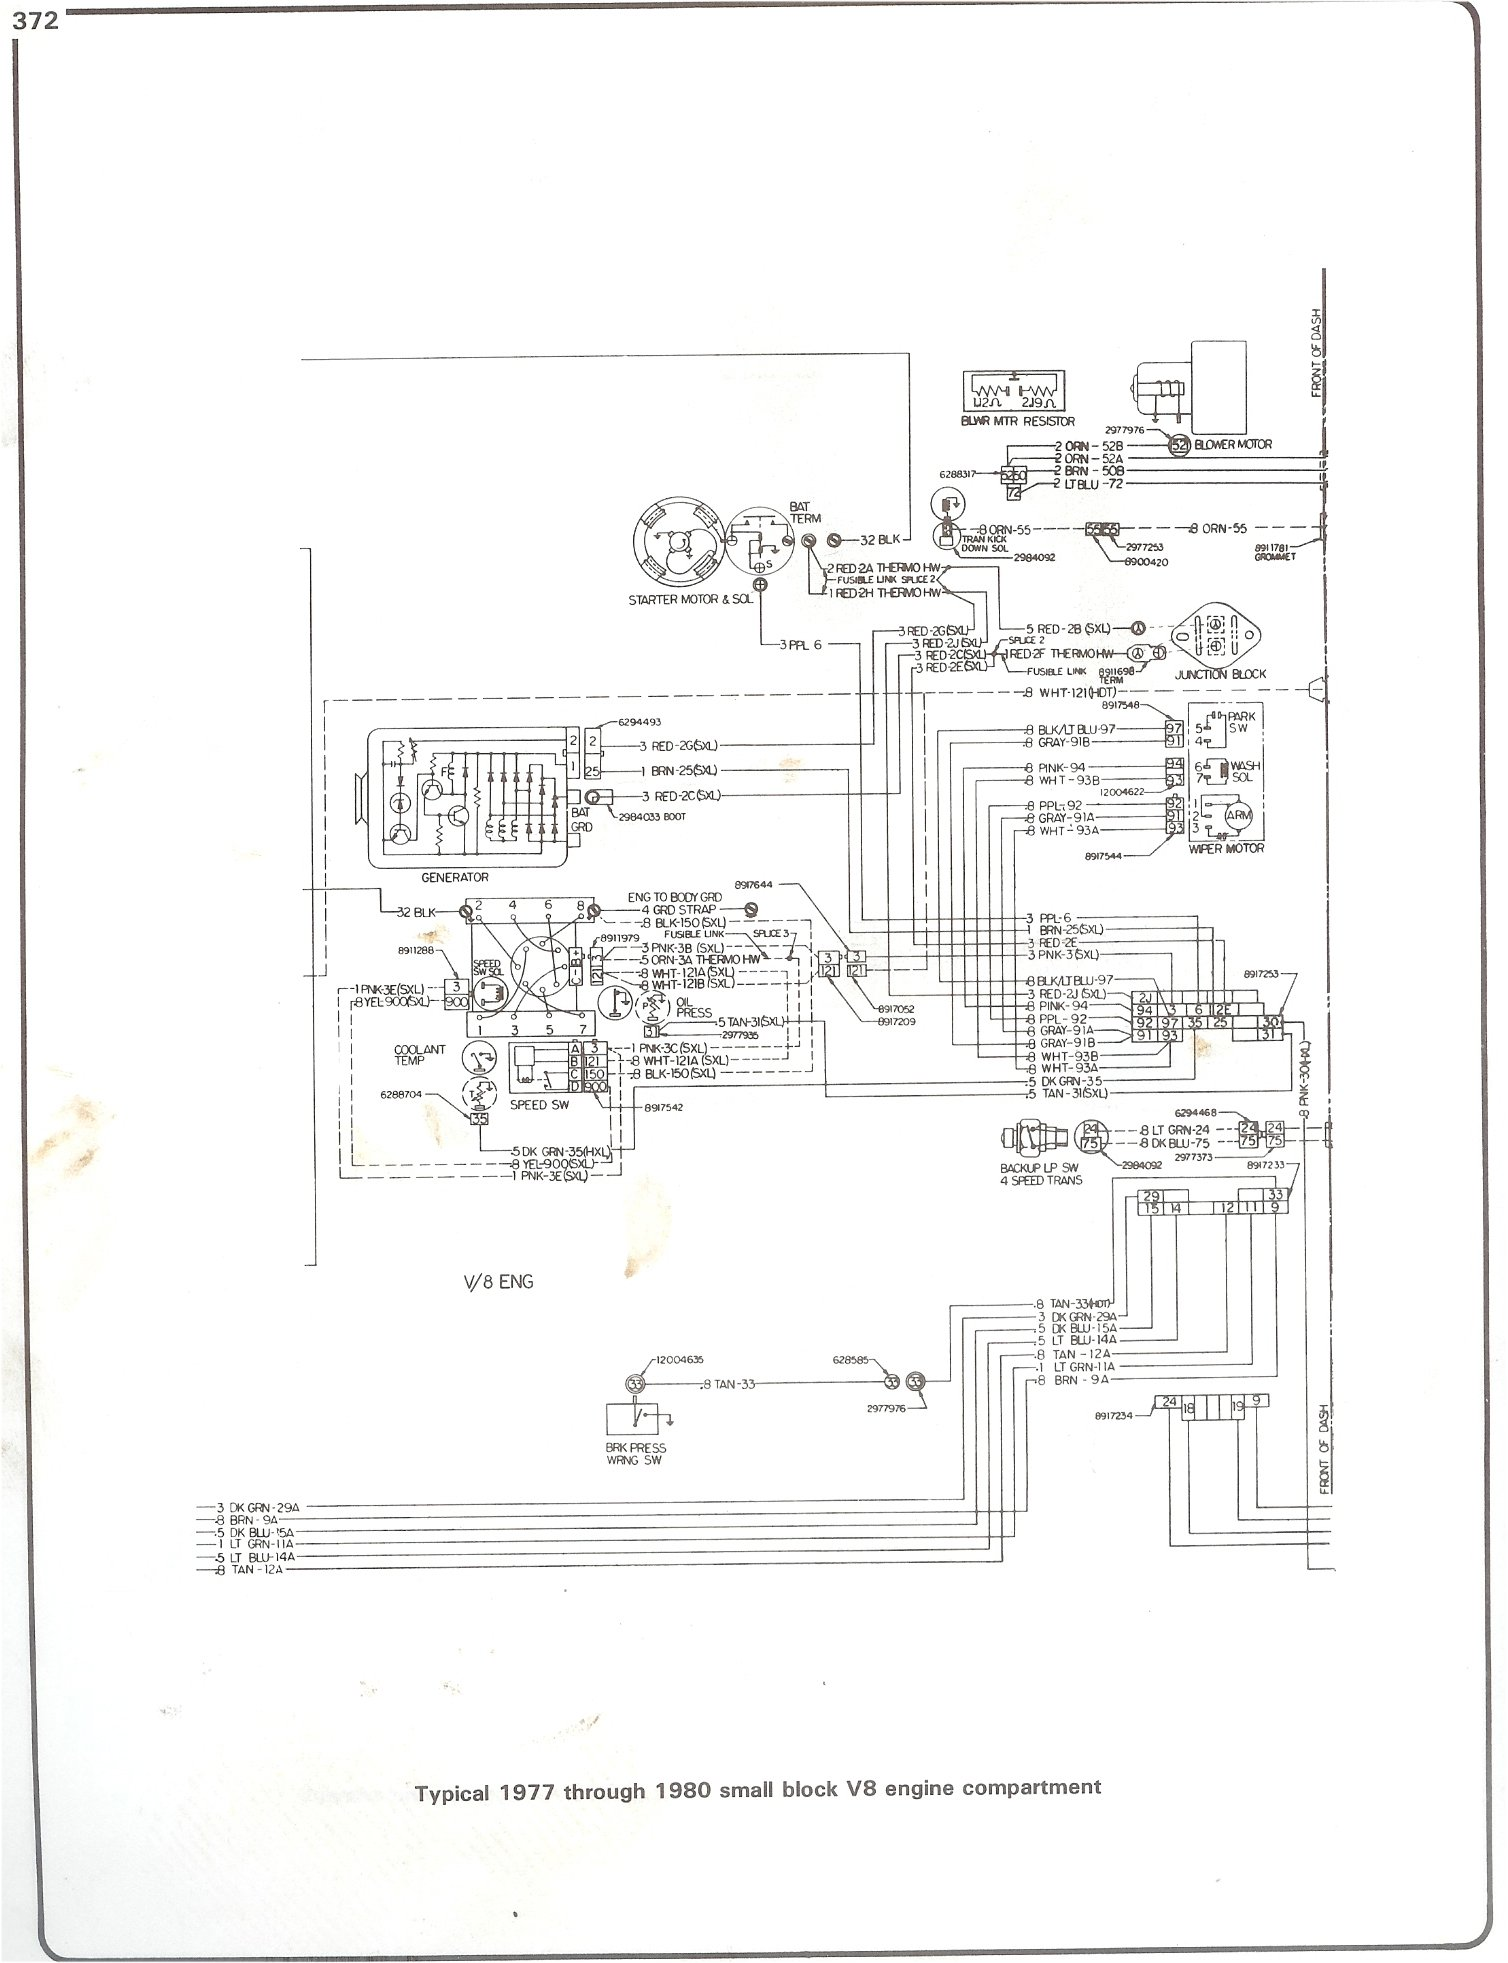 Complete 73 87 Wiring Diagrams Tach Diagram On A Ford F150 In Addition Diesel 77 80 Sbc Engine